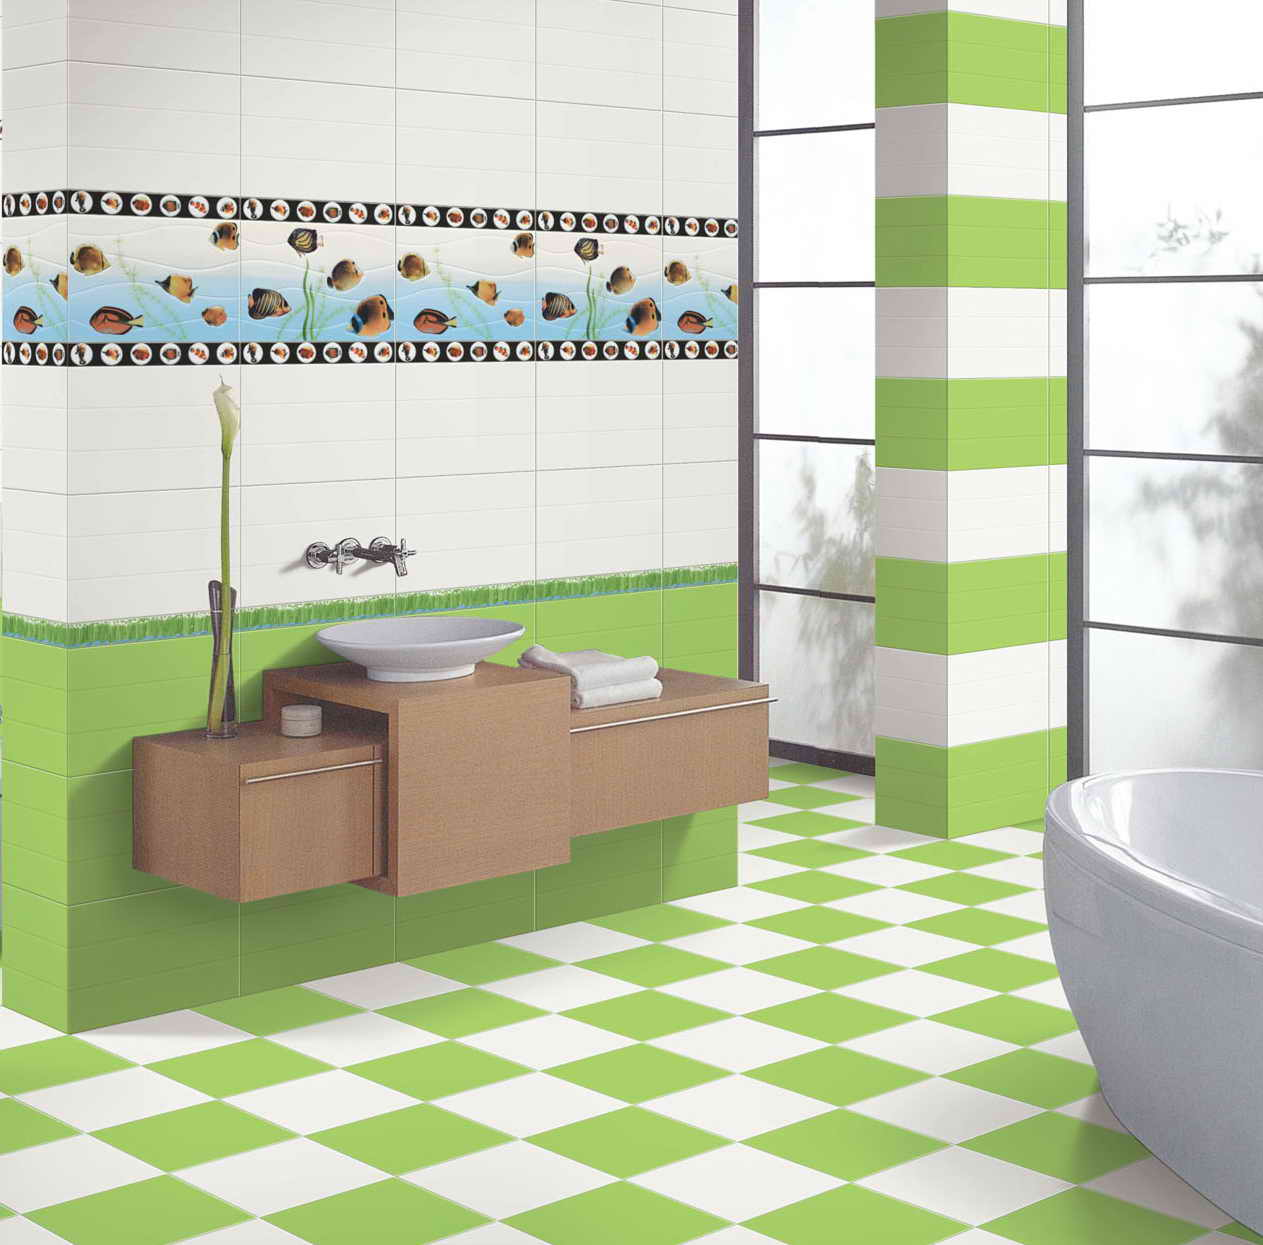 Standard Tub Size And Other Important Aspects Of The Bathroom: Floor And Wall Tiles Calculator